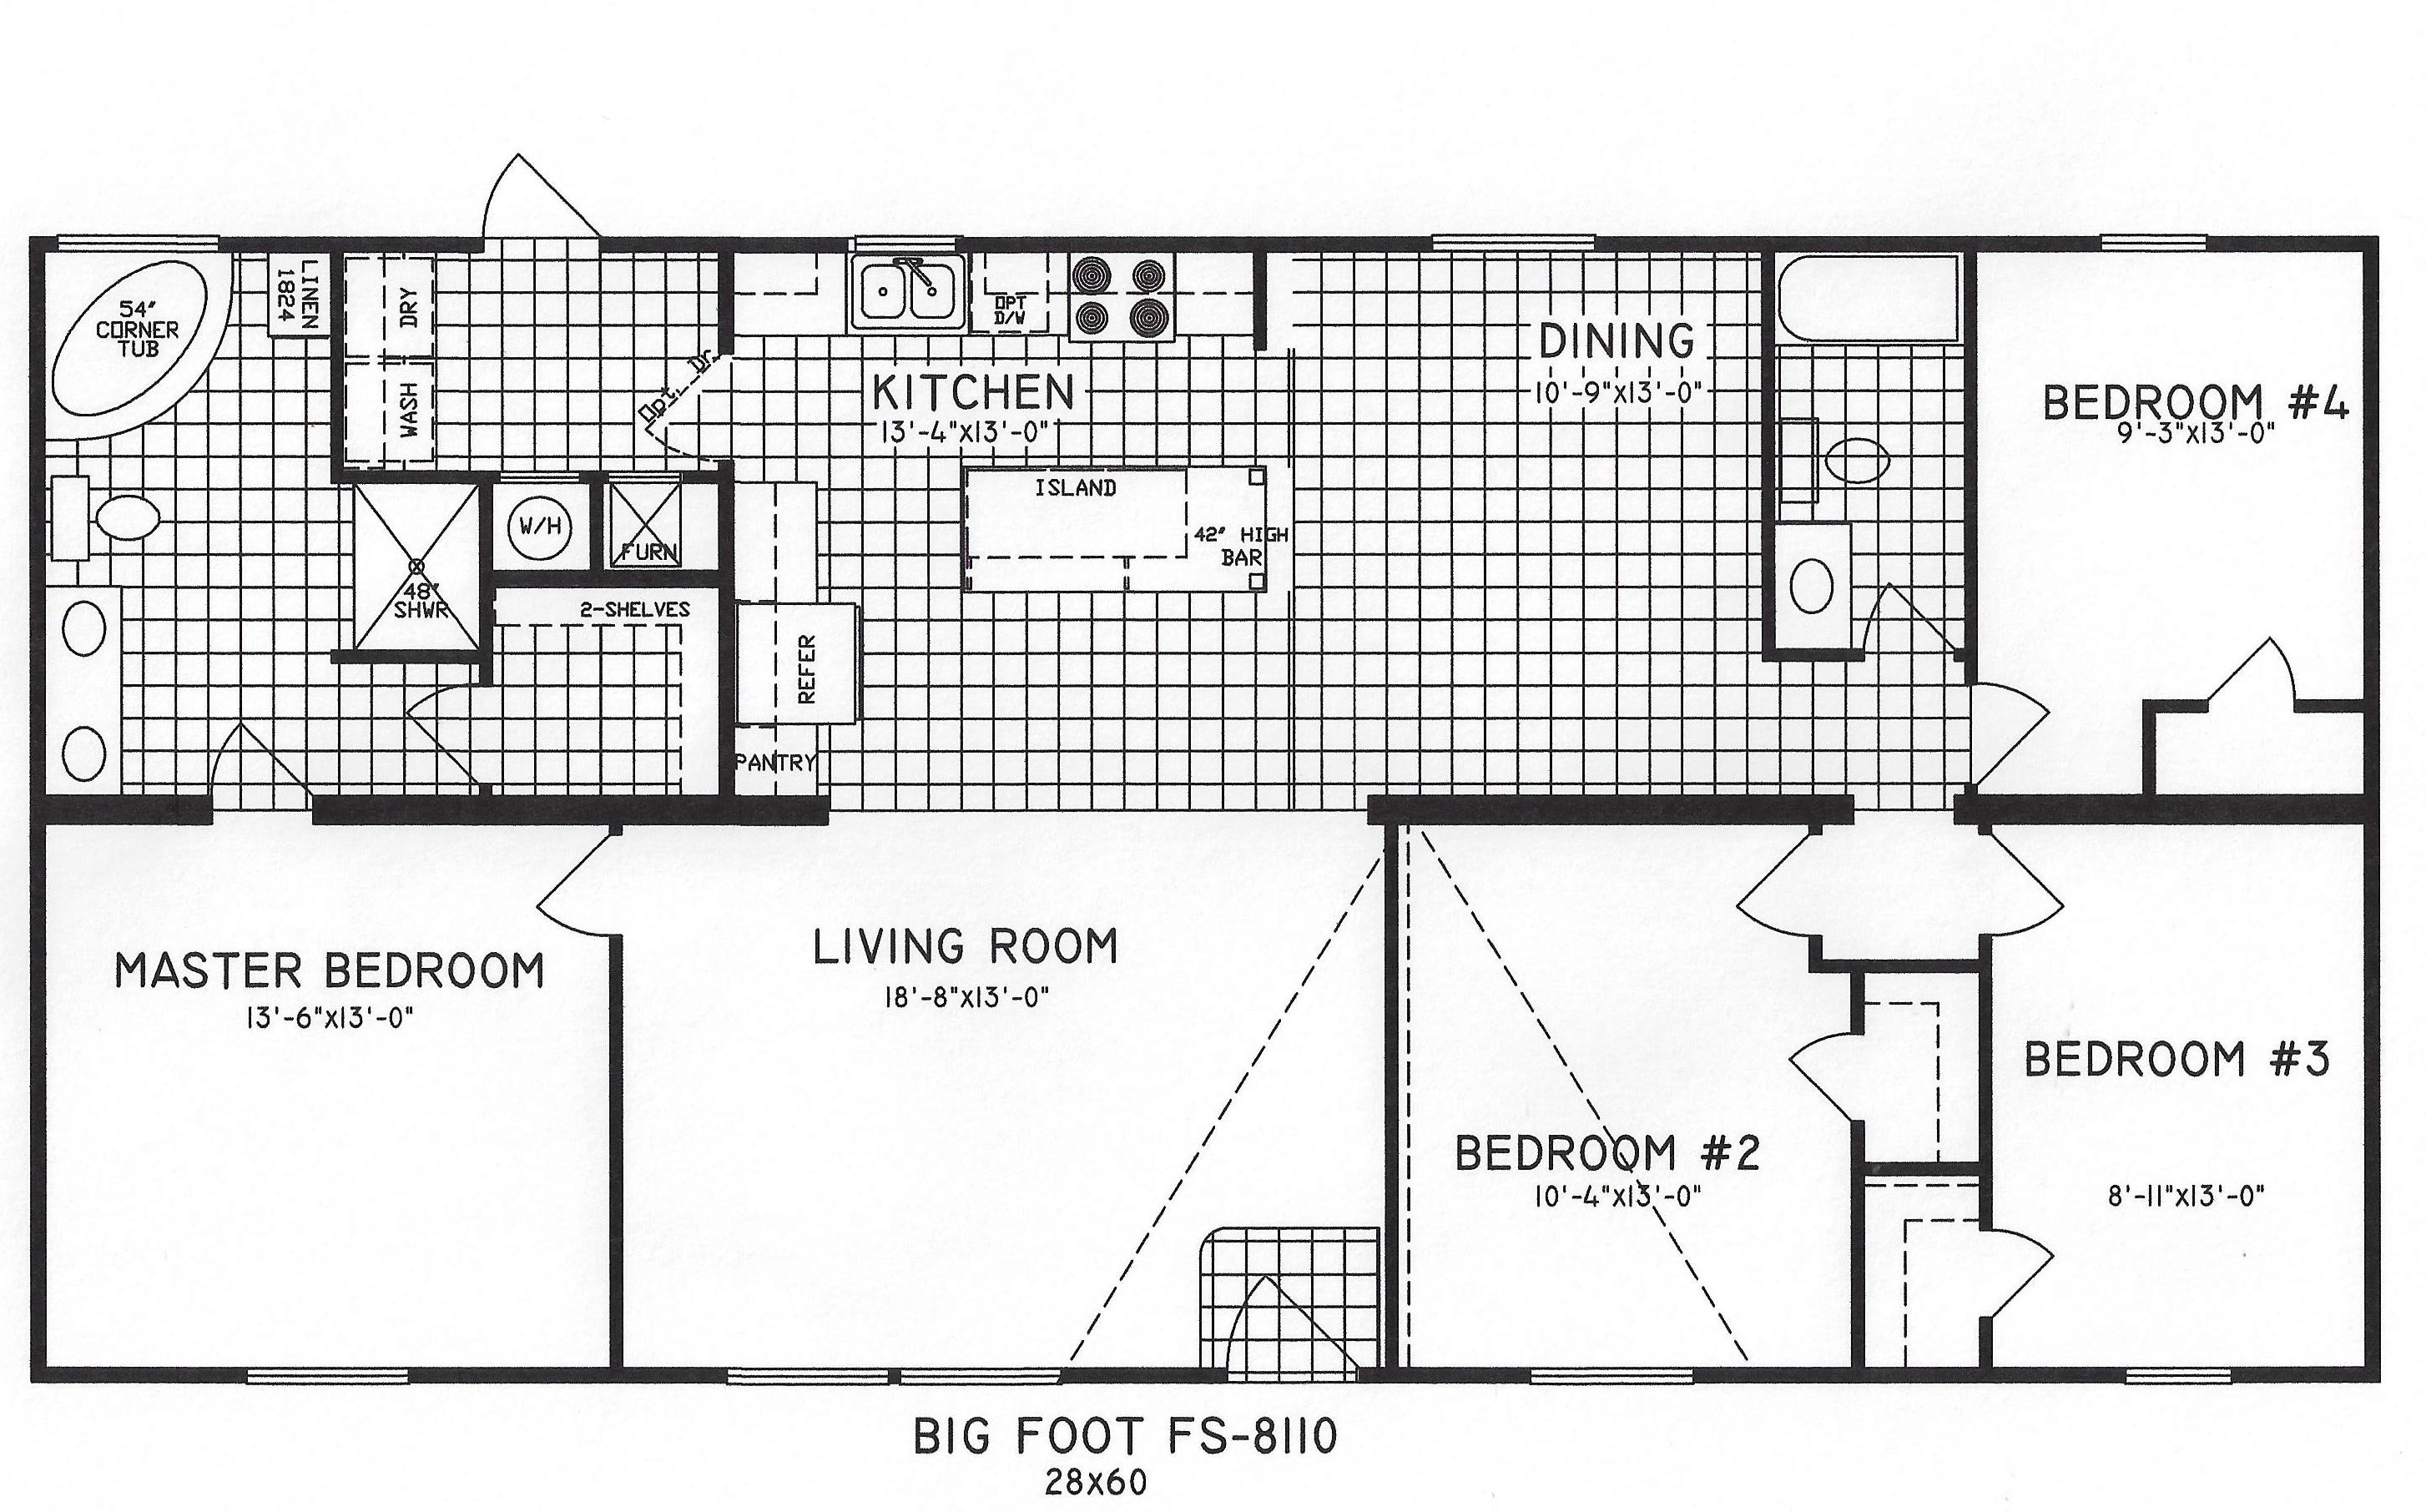 4 bedroom floor plan c 8110 hawks homes manufactured for 4 bedroom floorplans